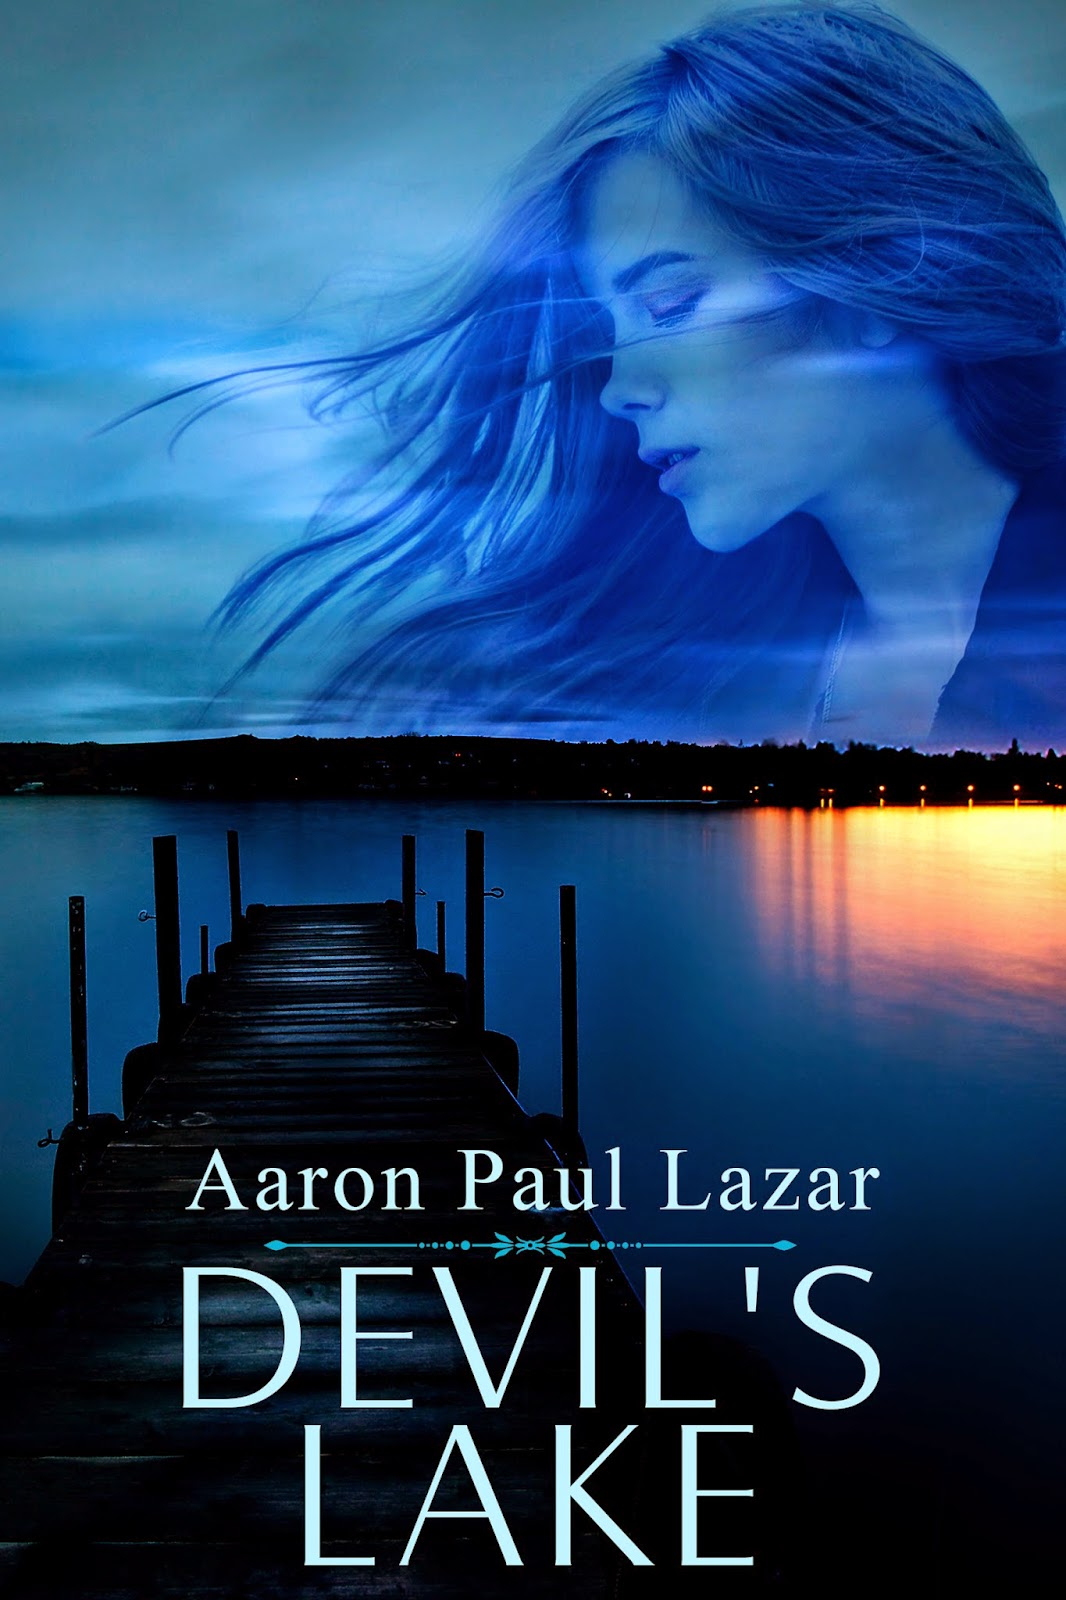 http://www.amazon.com/Devils-Lake-Aaron-Paul-Lazar-ebook/dp/B00LNFP8XU/ref=sr_1_1?s=digital-text&ie=UTF8&qid=1406900868&sr=1-1&keywords=devil%27s+lake